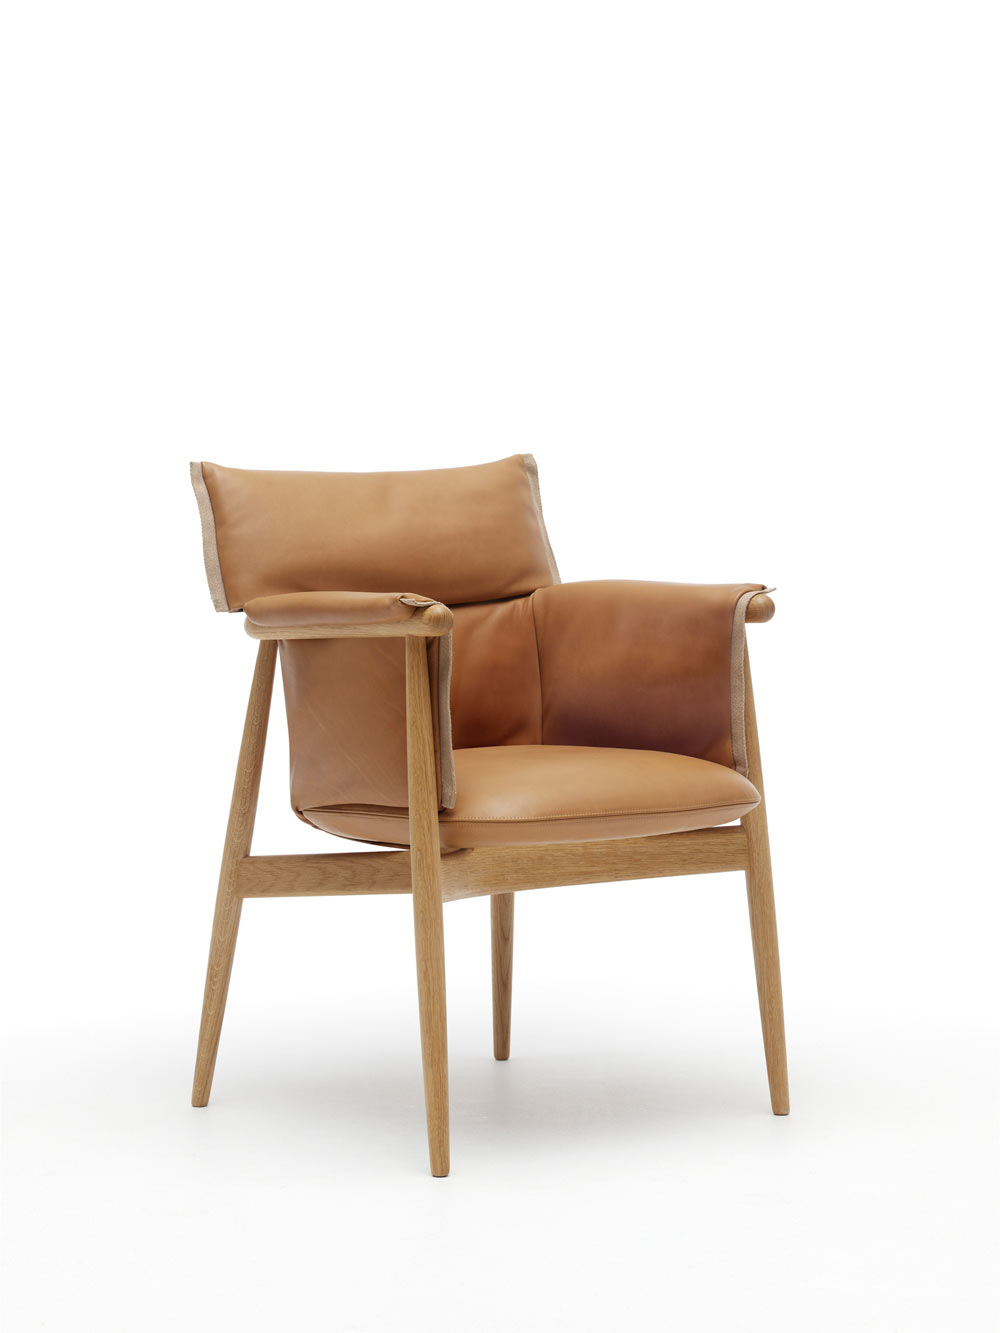 EOOS-Carl-Hansen-Embrace-Chair-9